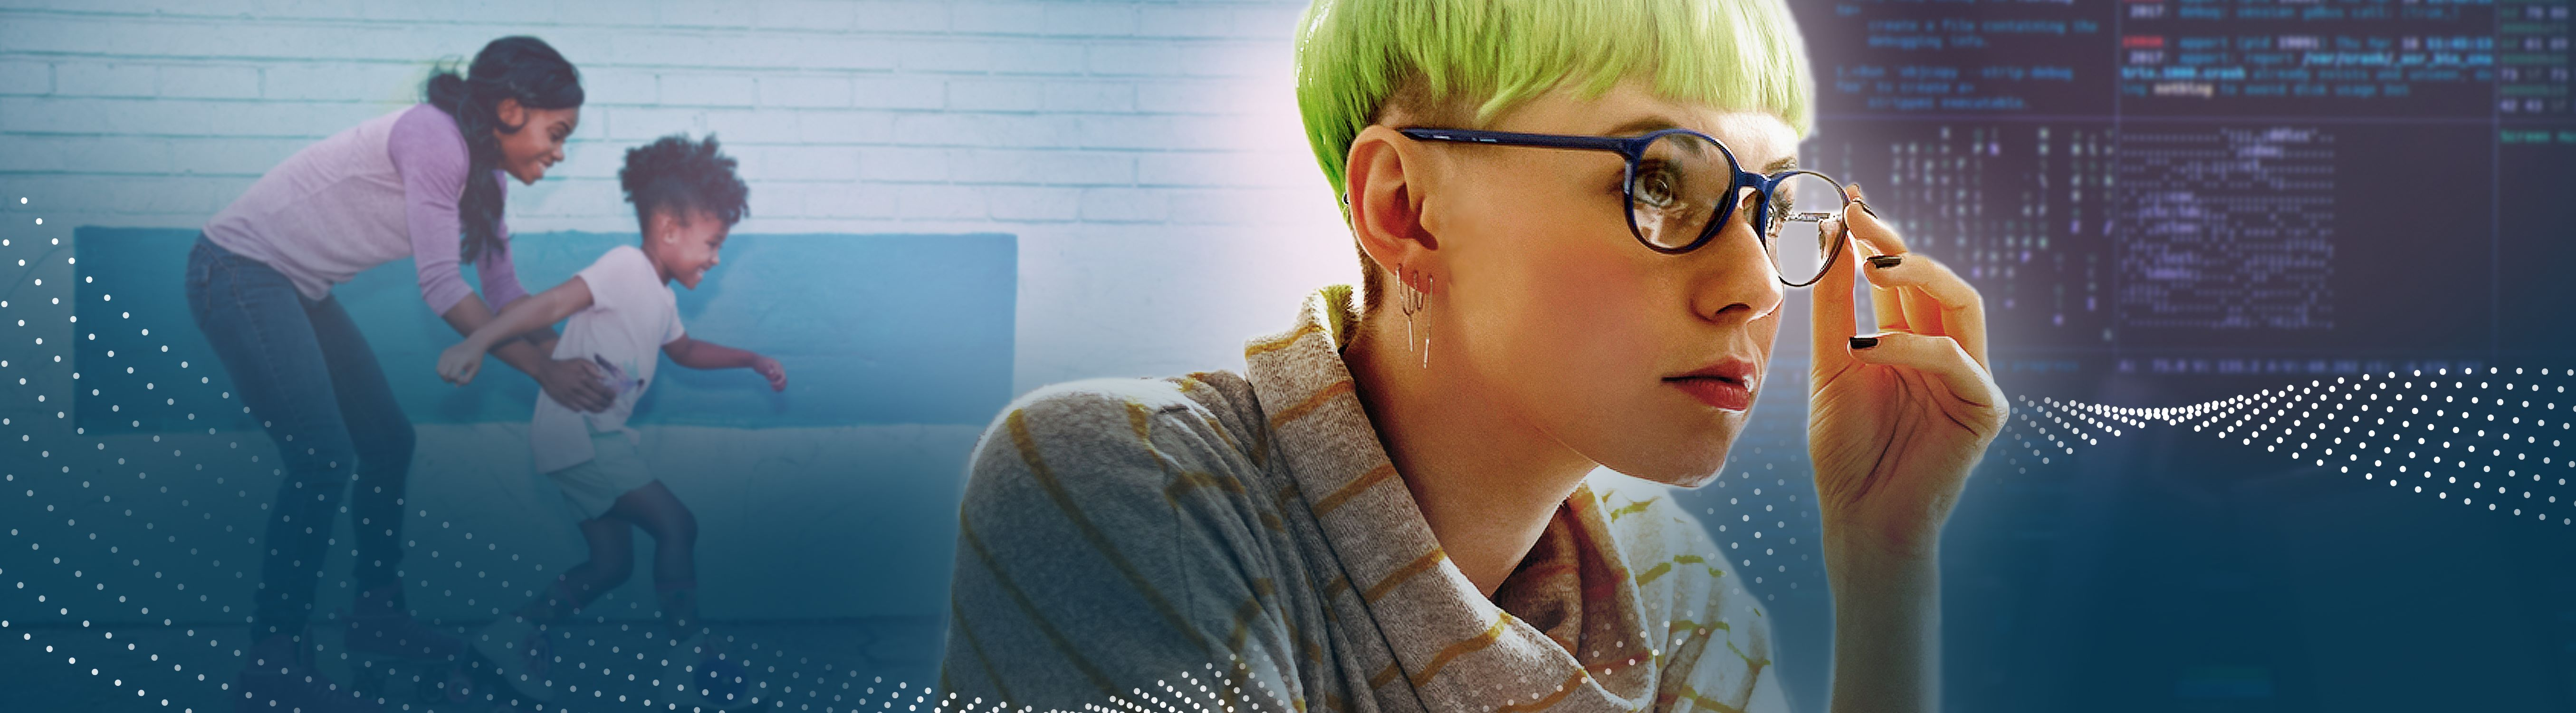 Female professional with green hair and glasses